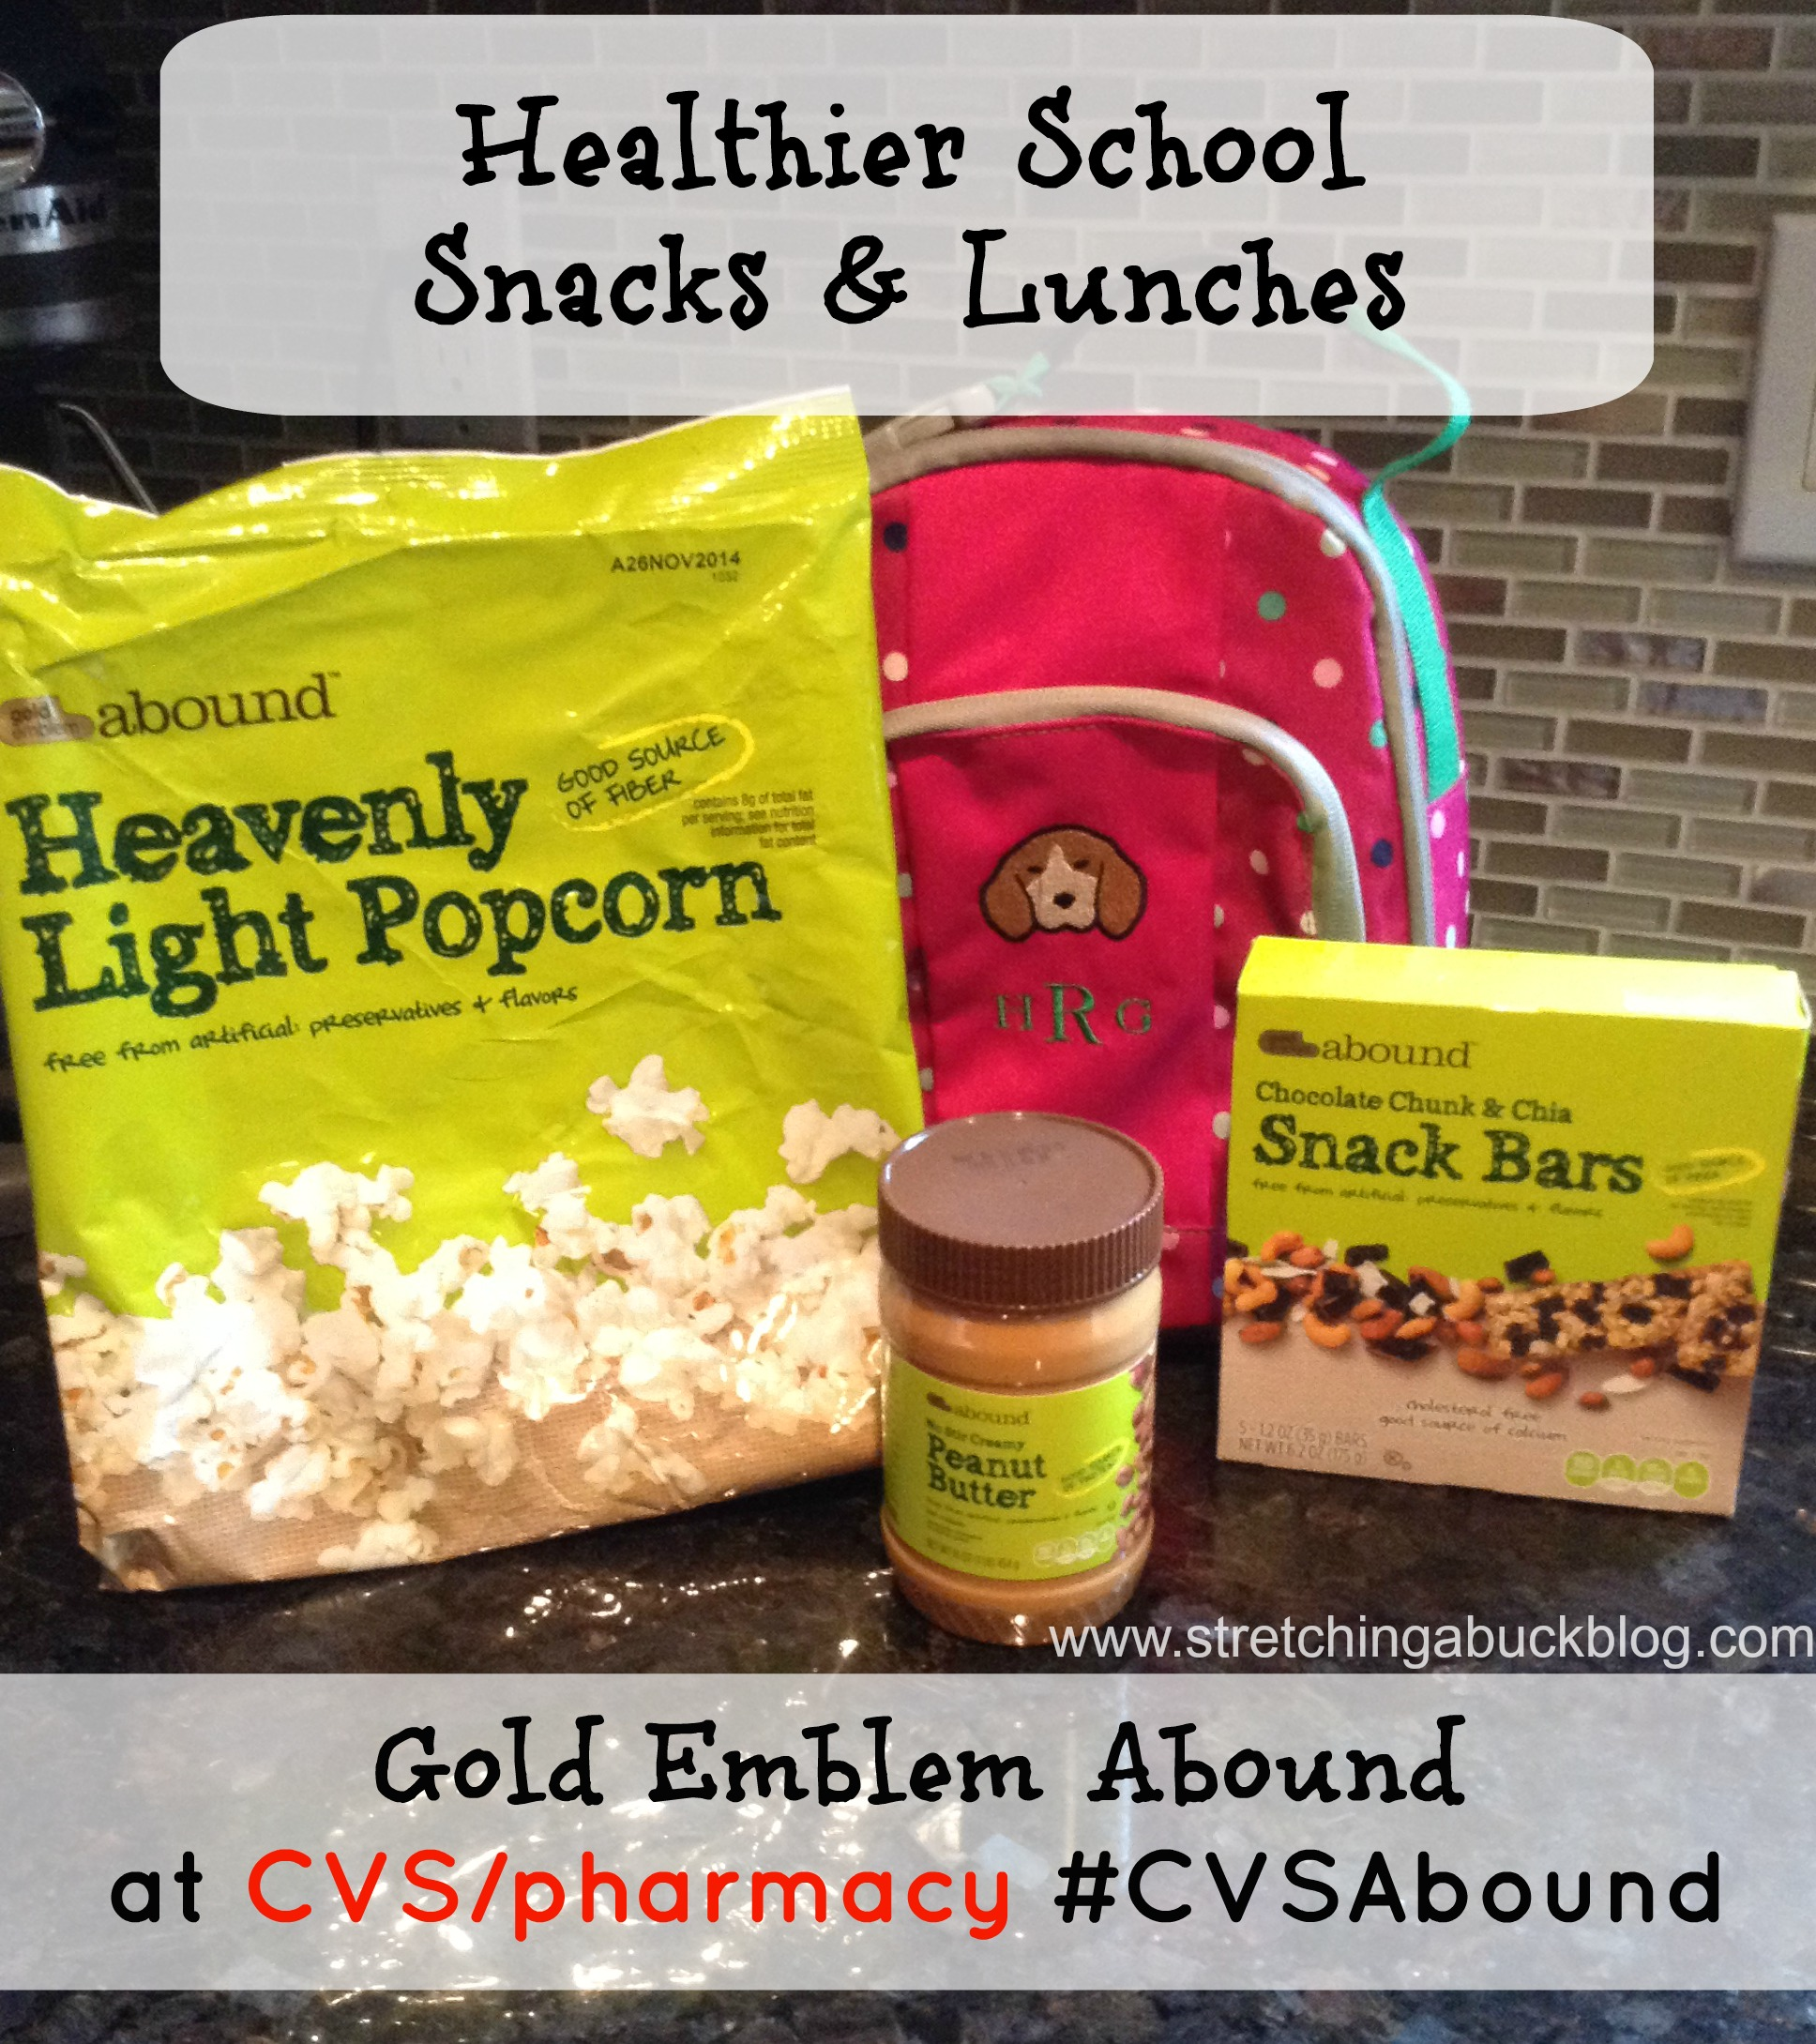 Giveaway: Healthier Lunches with Gold Emblem Abound #CVSAbound #spon